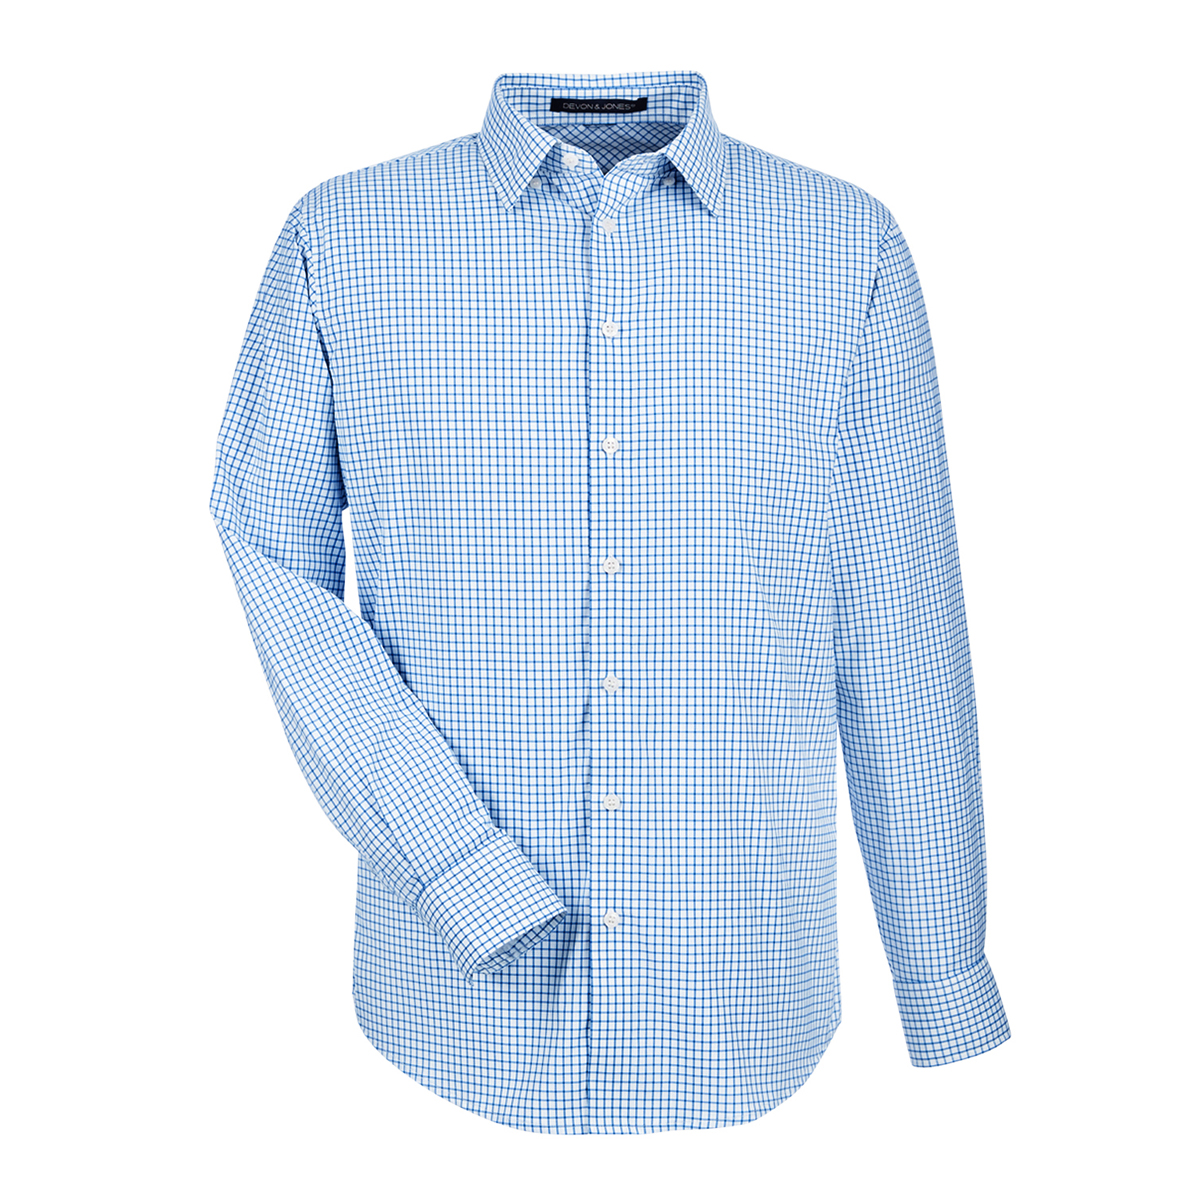 CROWN LUX PERF MICRO WINDOW PANE SHIRT